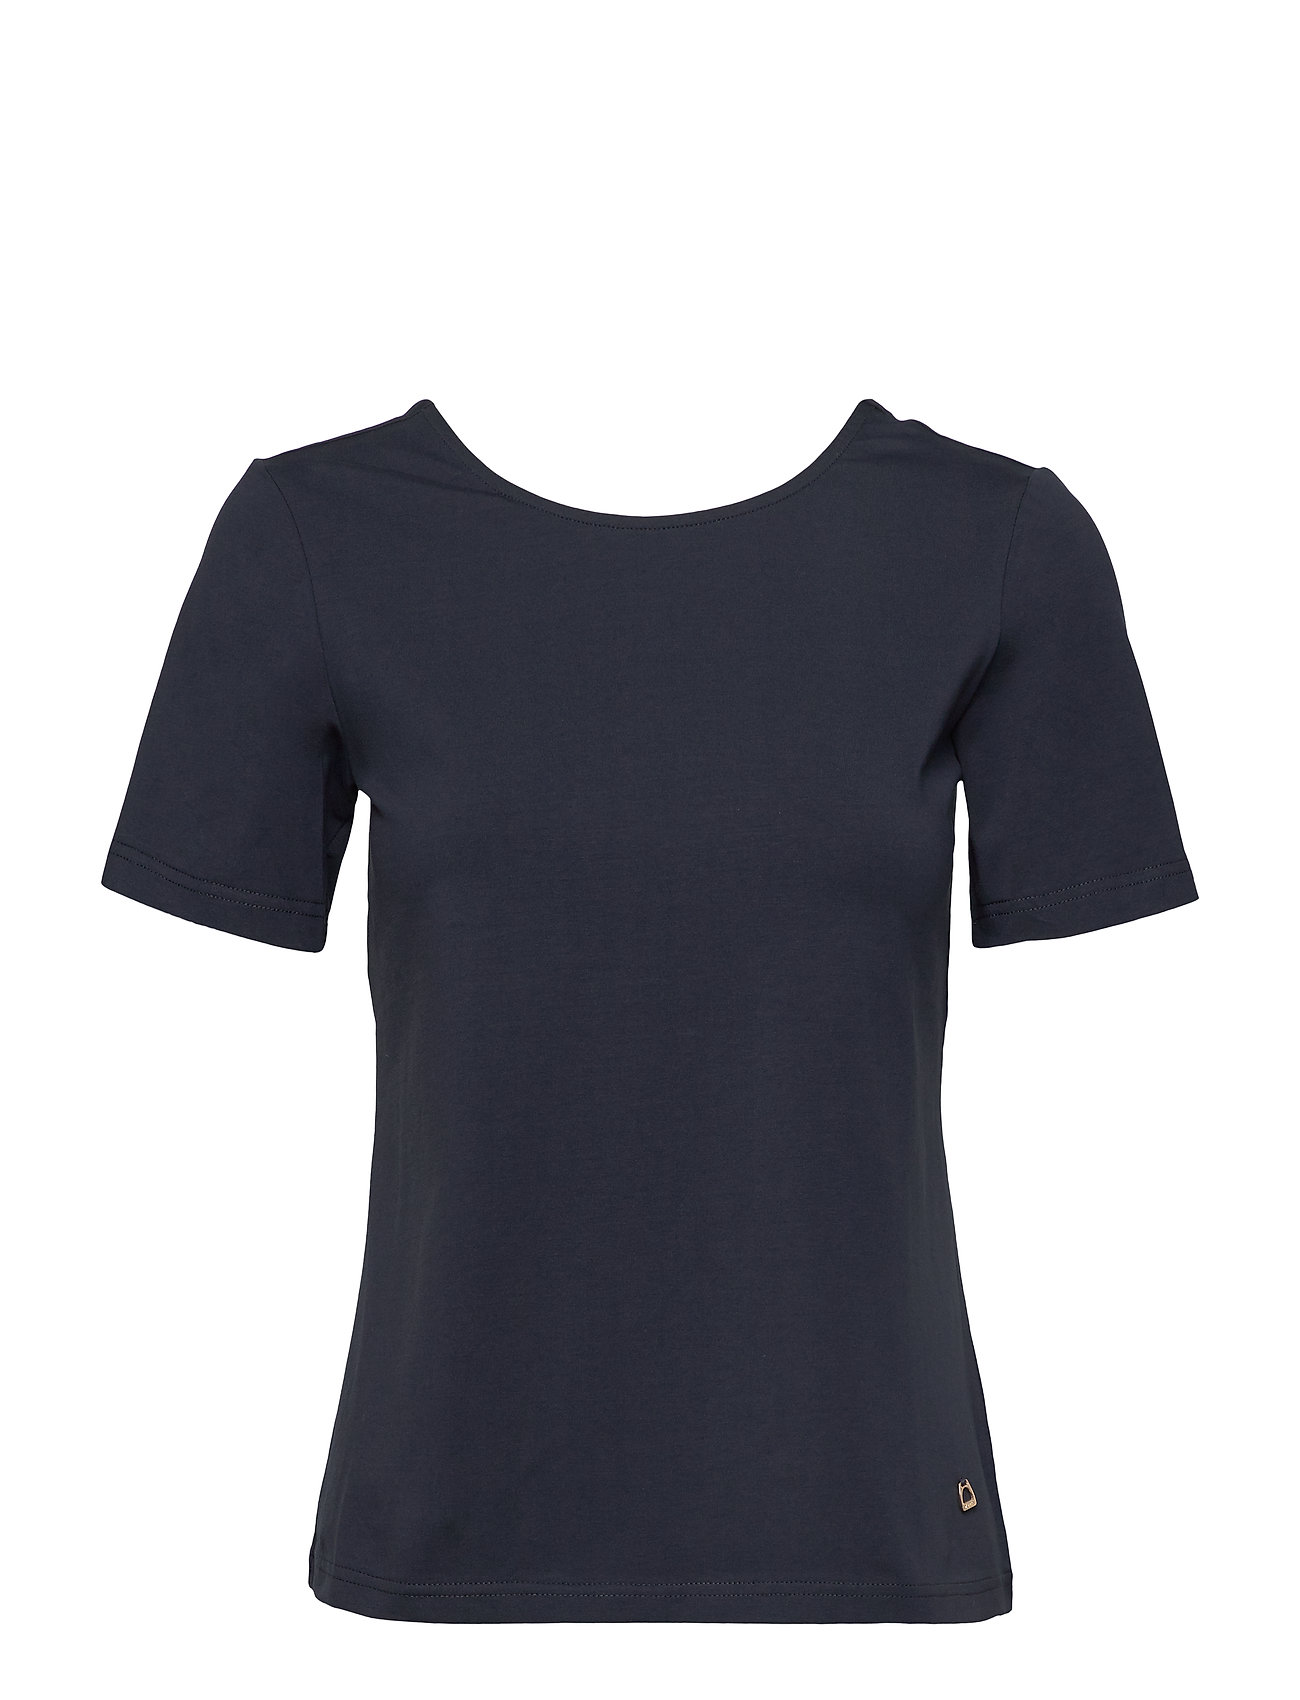 Image of Laura Tee T-shirt Top Blå Morris Lady (3420572729)